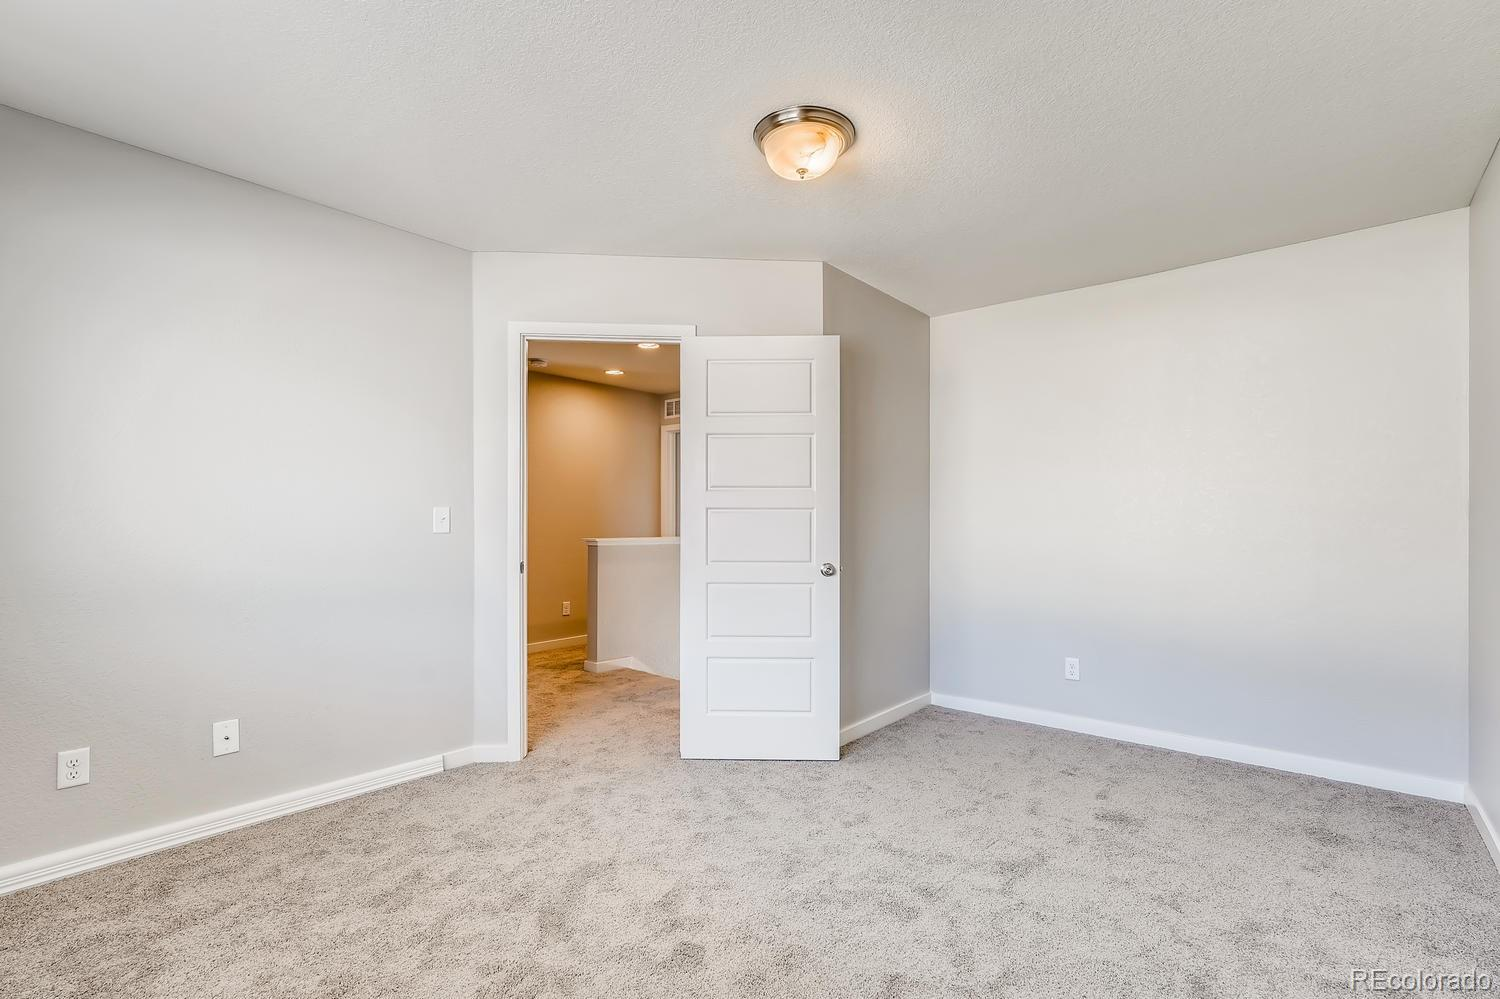 MLS# 8359032 - 19 - 5226 Andes Street, Denver, CO 80249